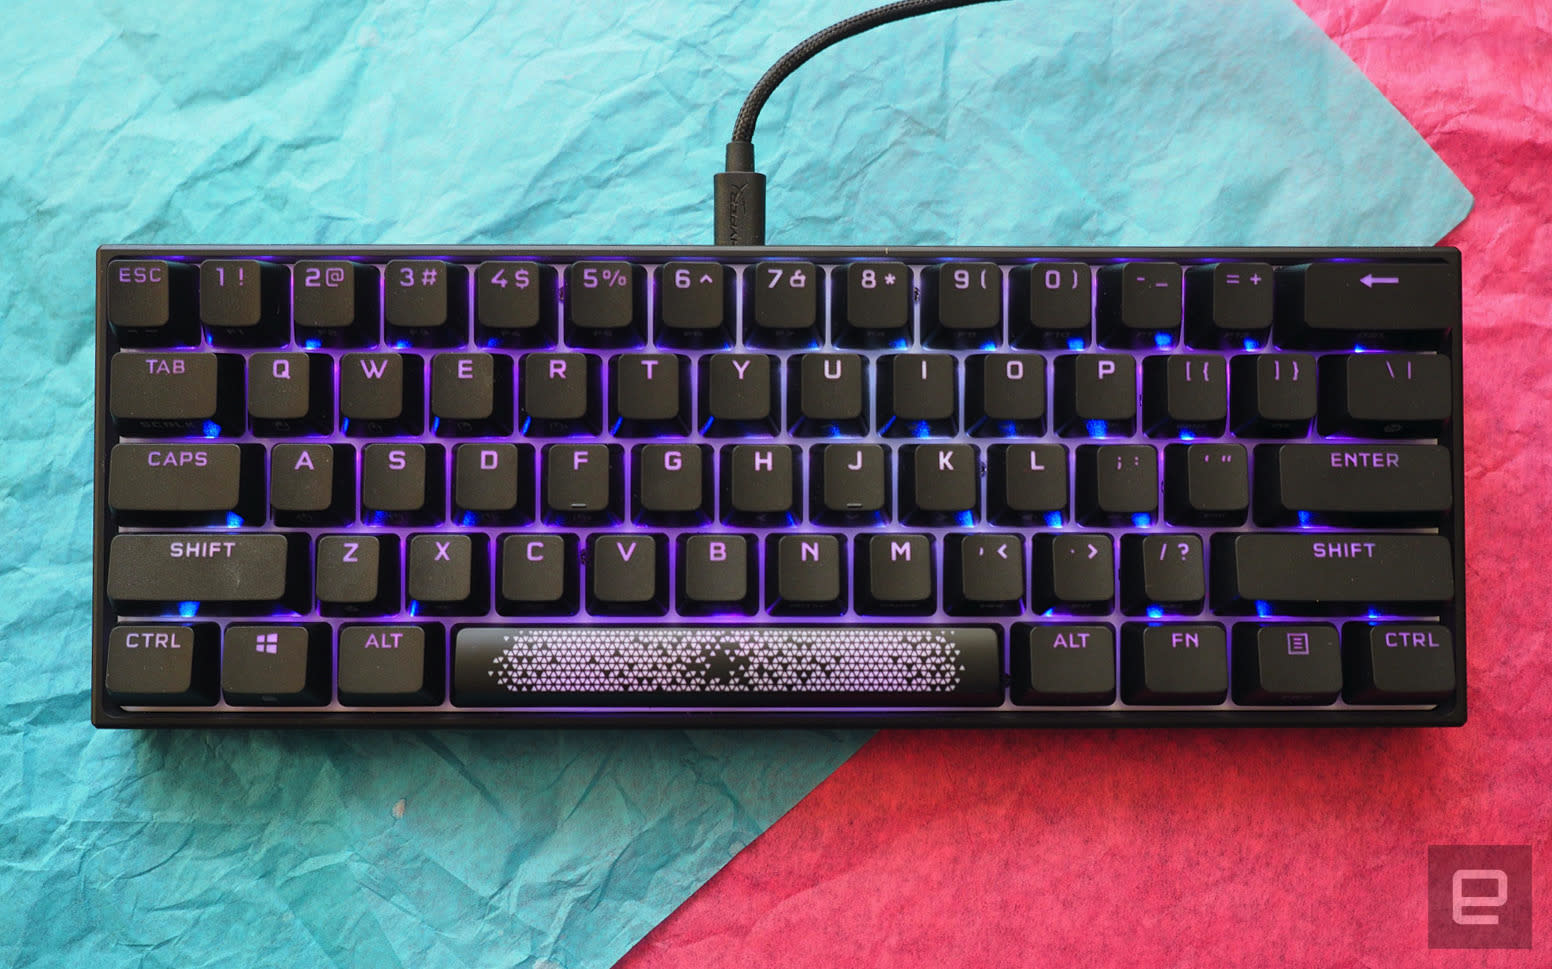 The Corsair K65 RGB Mini keyboard photographed on top of teal and red paper.